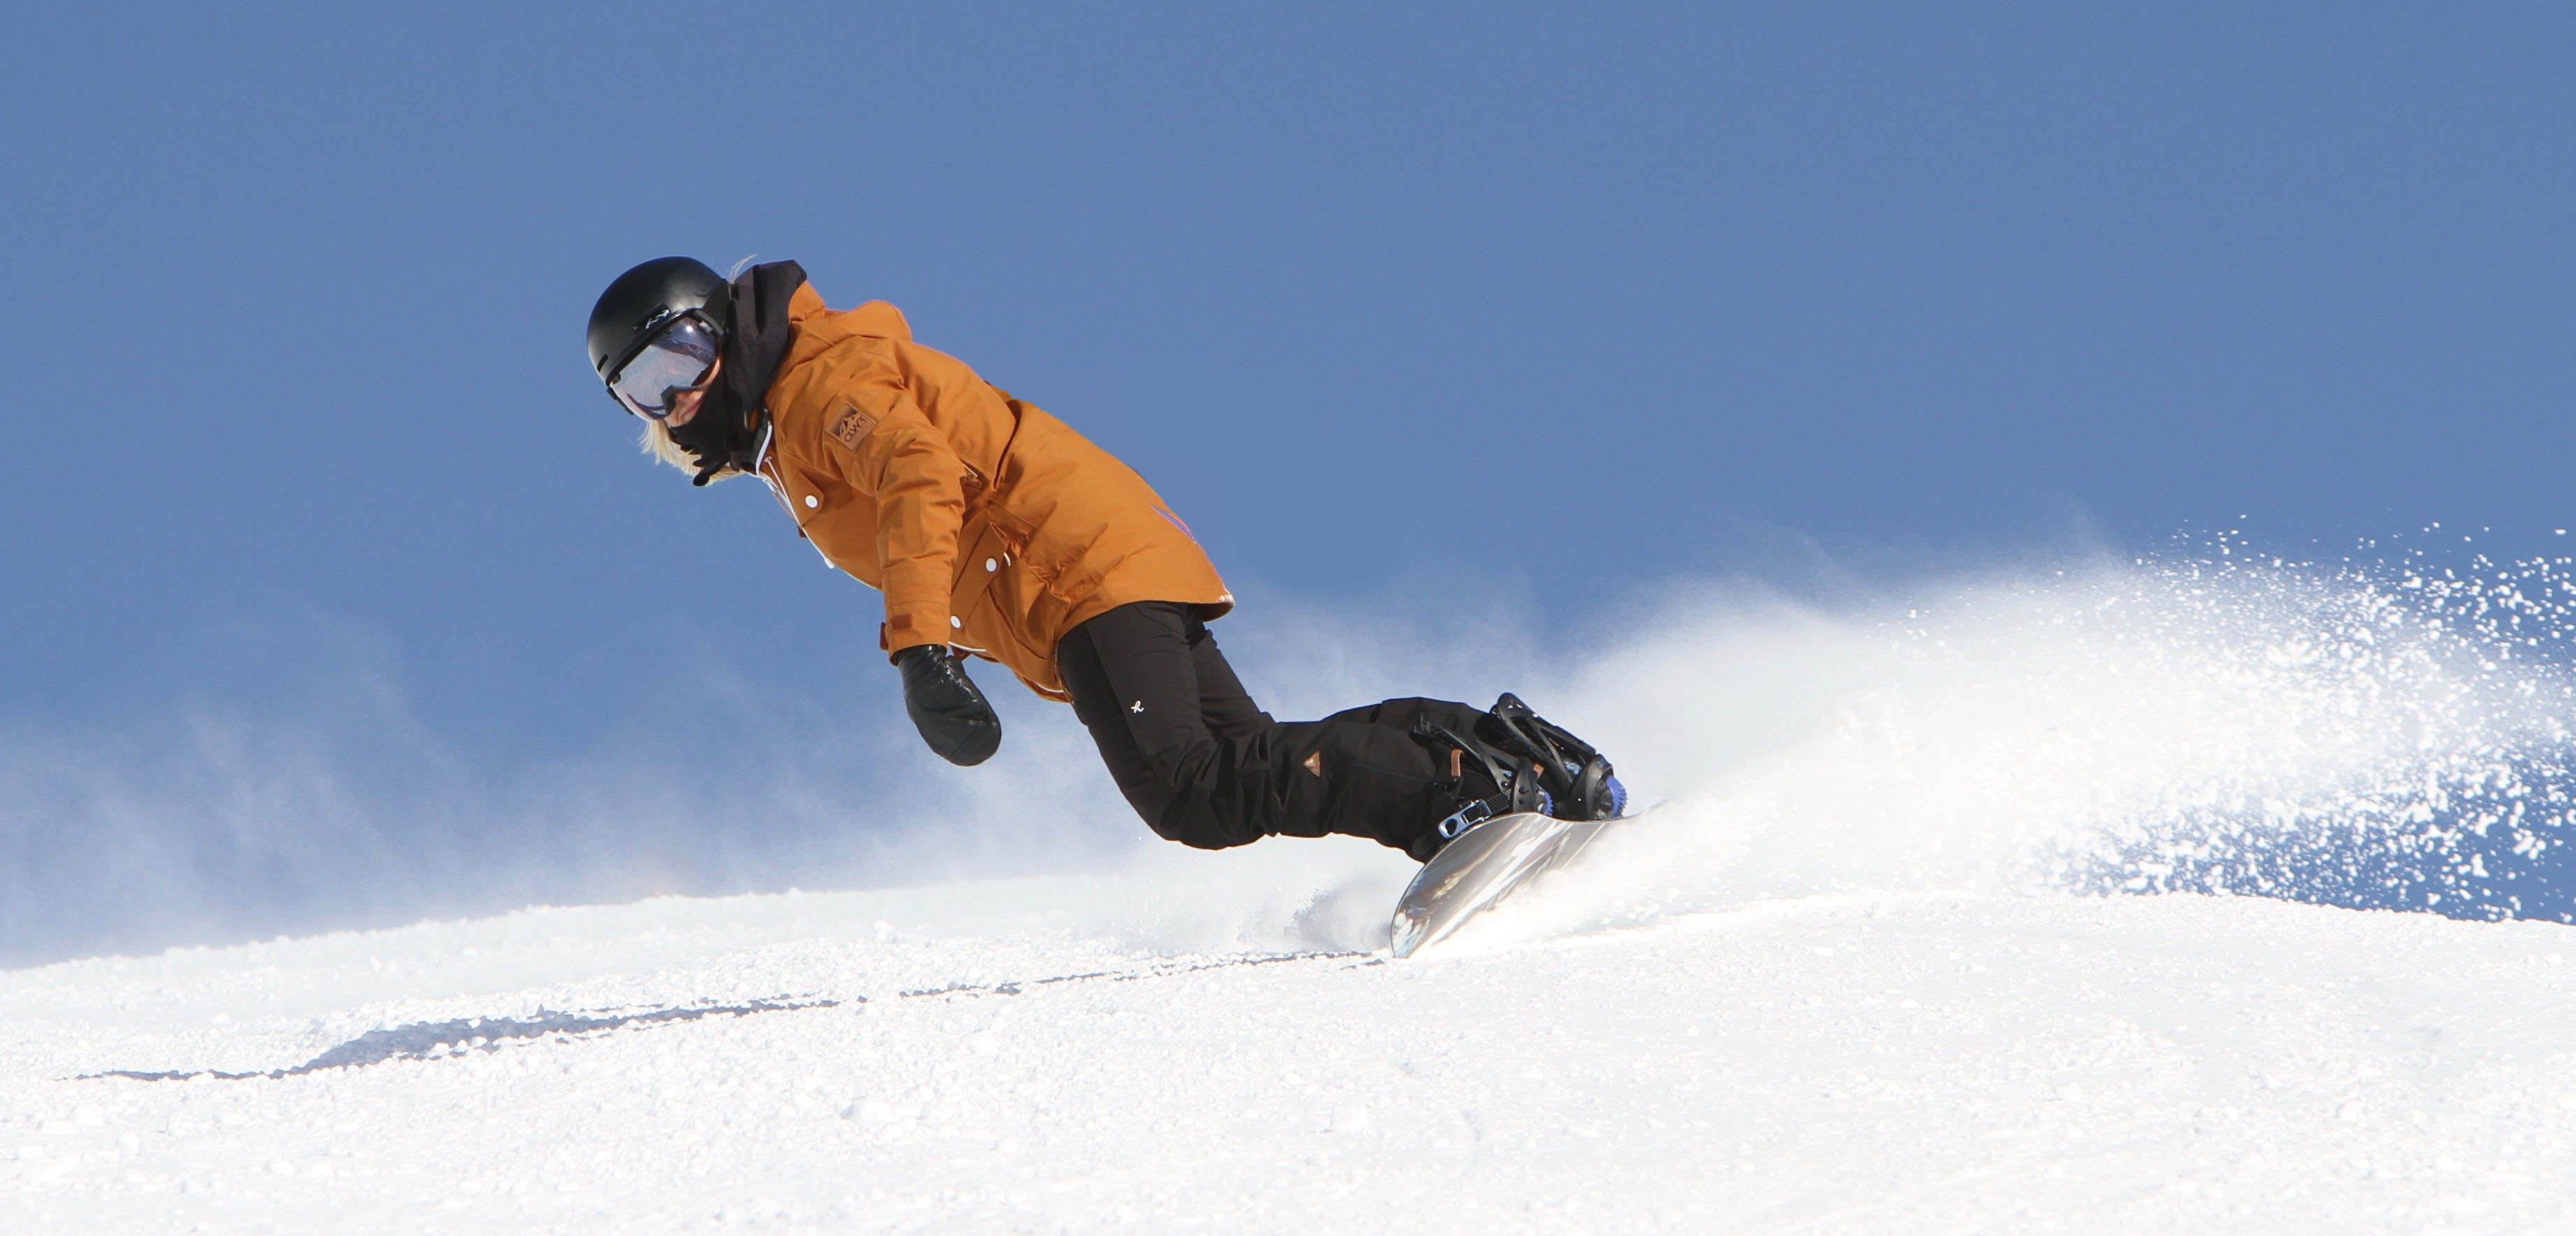 an analysis of snowboarding in popularity Snowboarding first played 1960s, united states characteristics categorization outdoor equipment snowboard deck, bindings, boots olympic 1998 snowboarding is a winter sport that involves descending a slope that is covered with snow while standing on a.